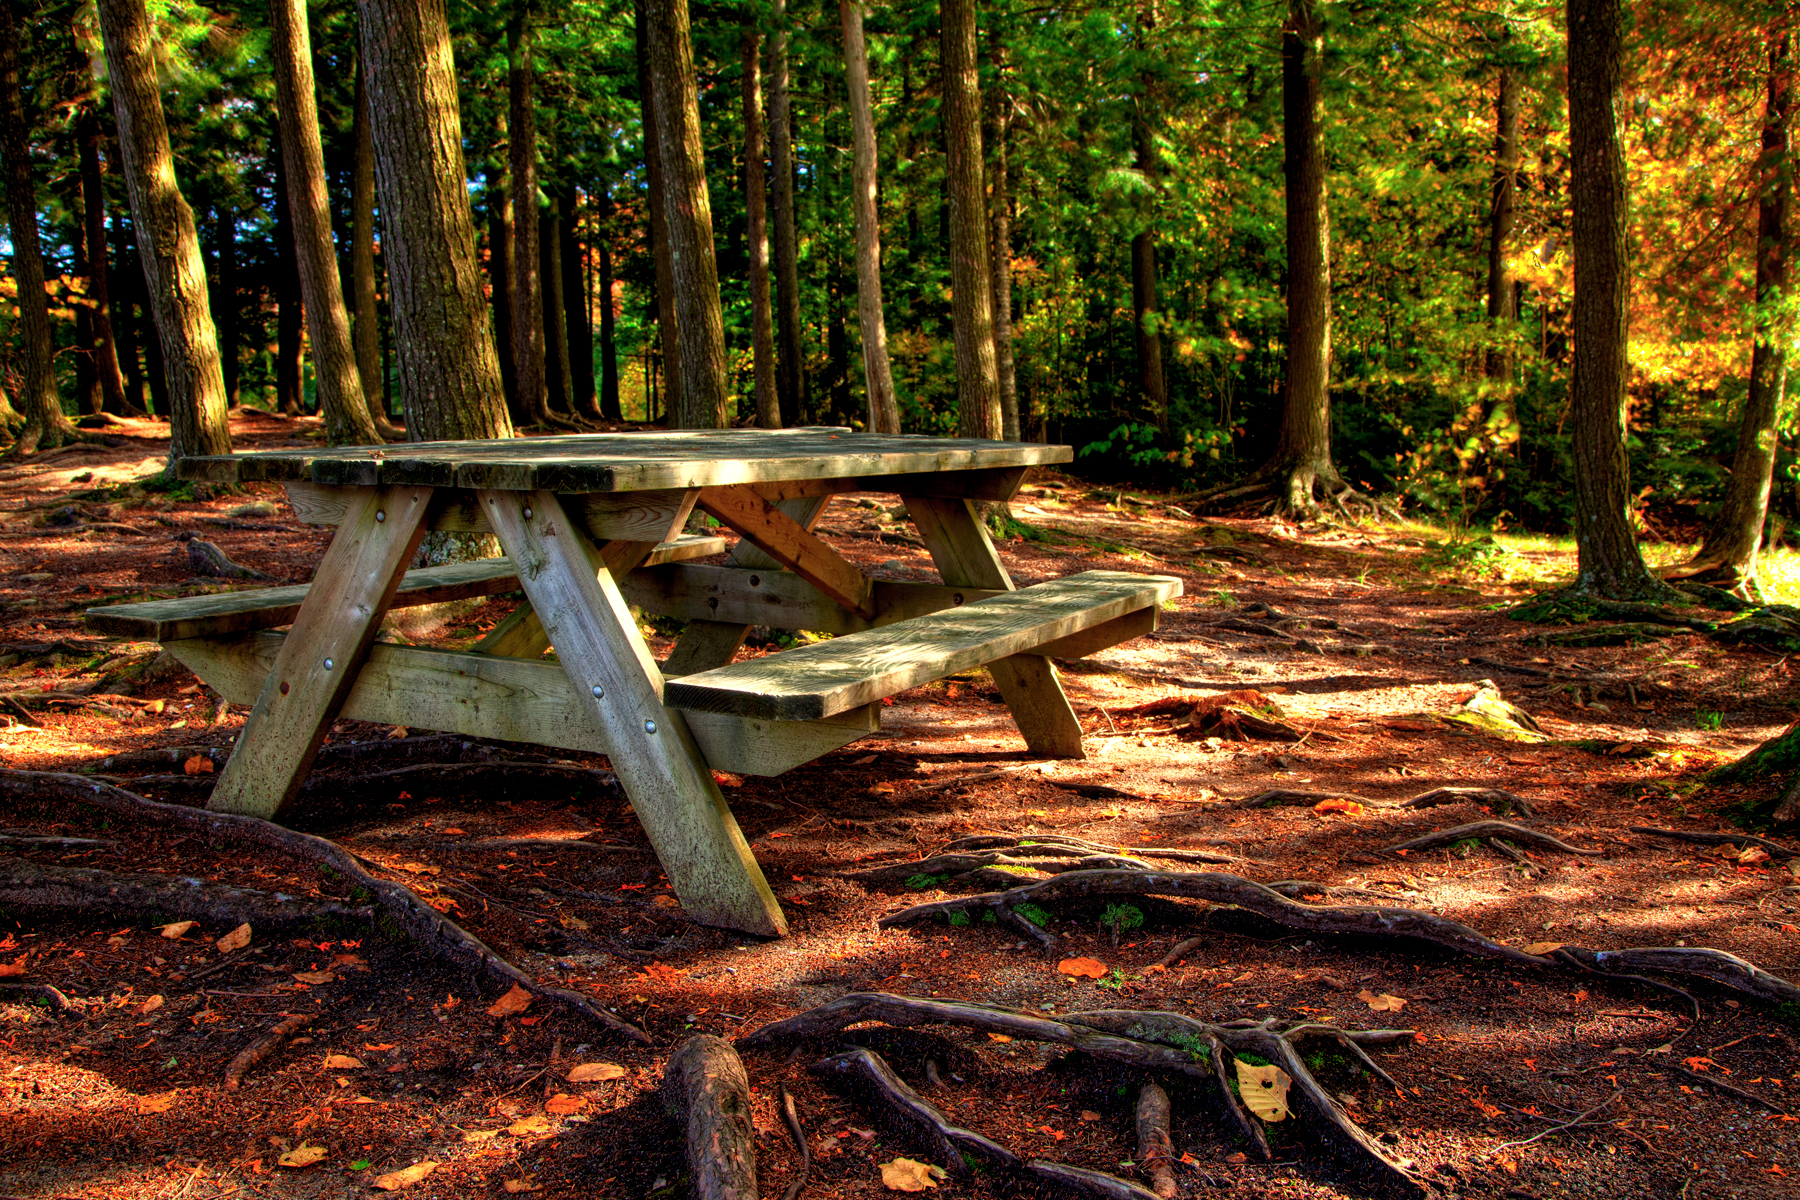 Forest picnic table - hdr photo